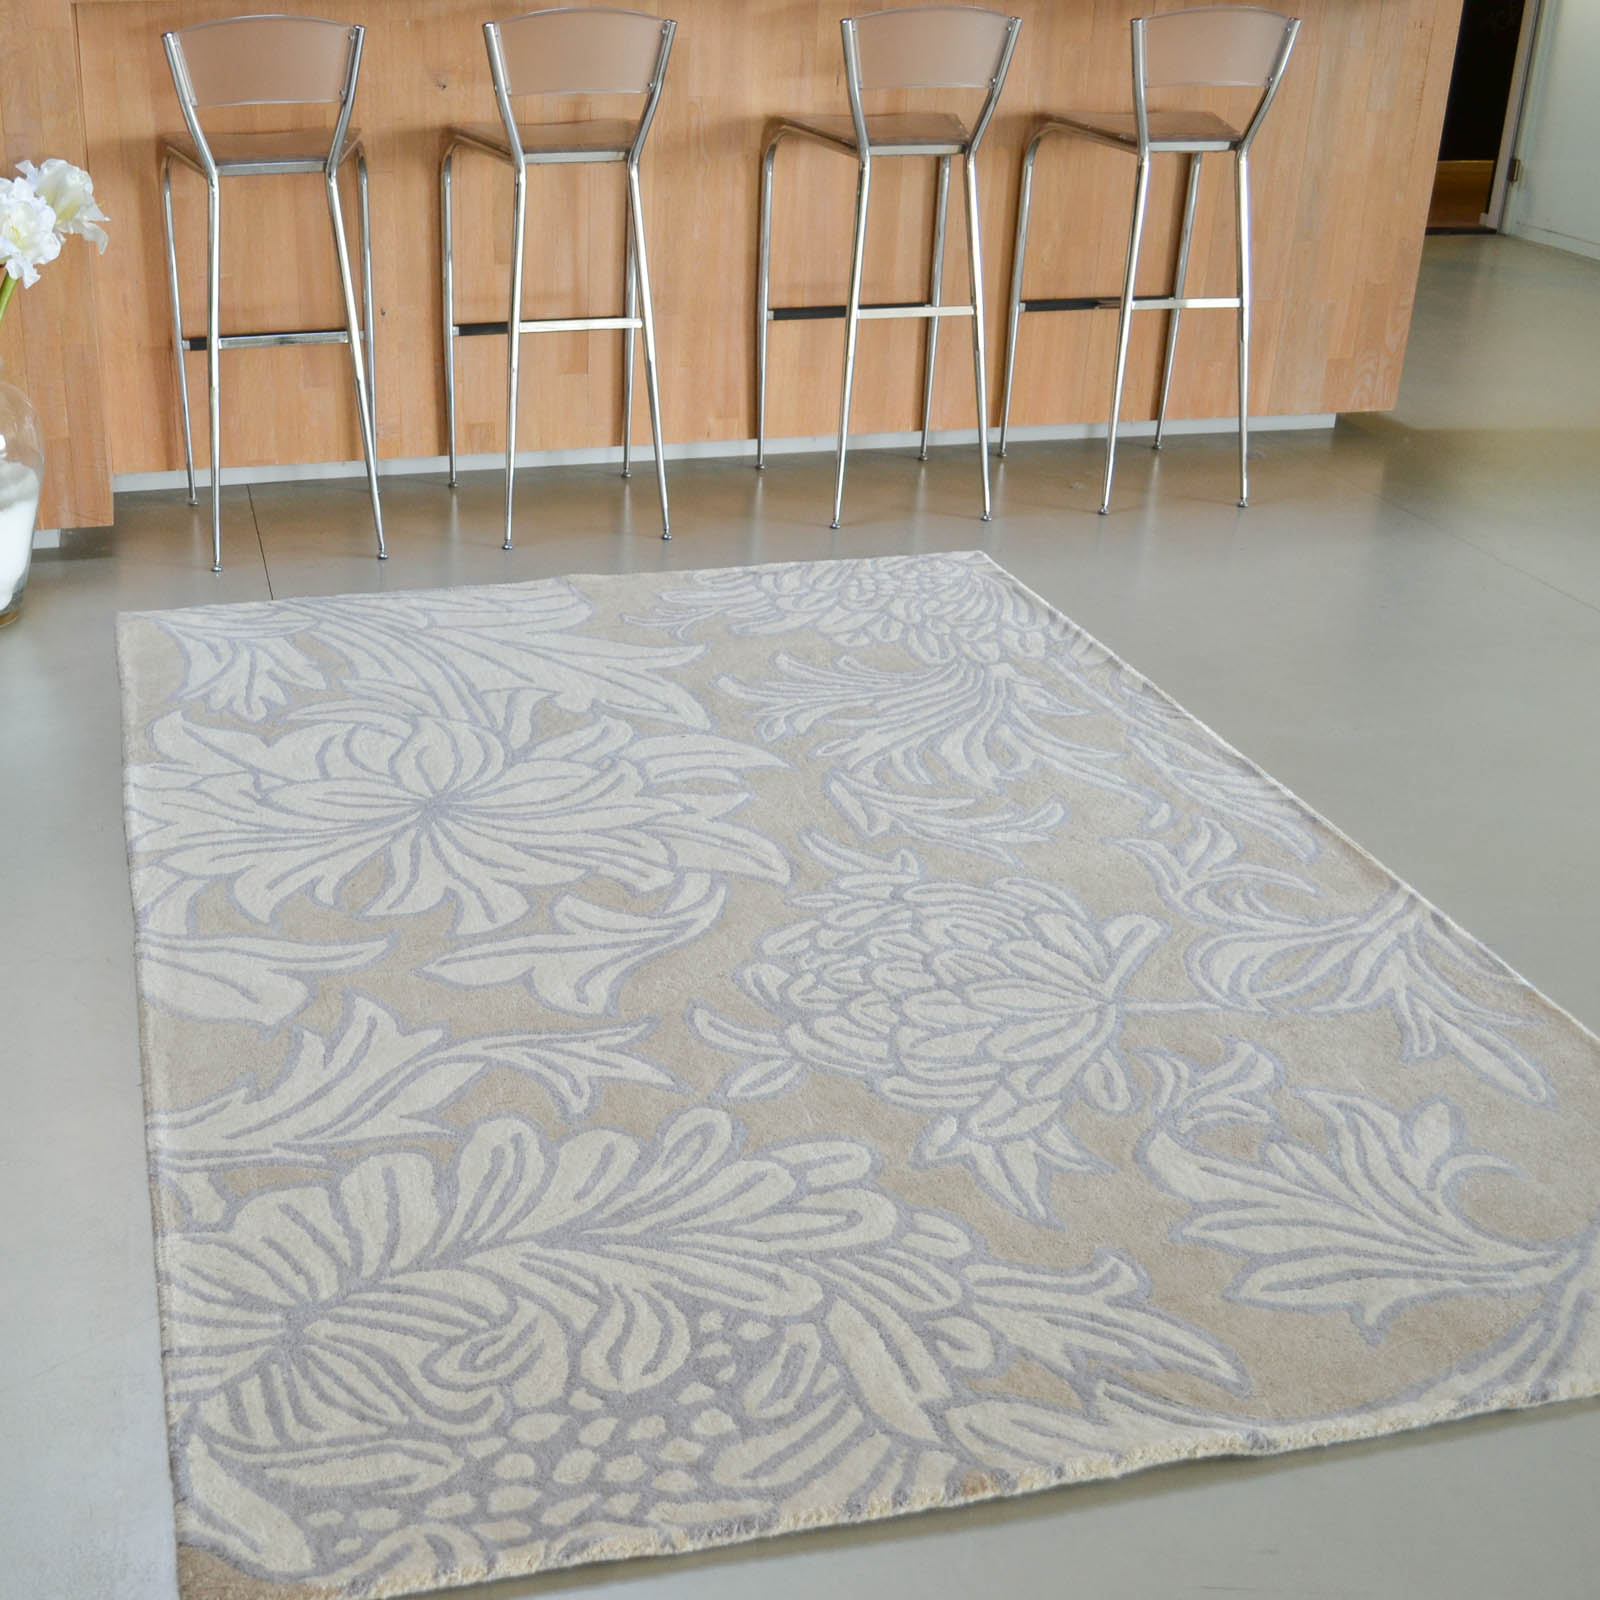 Chrysanthemum Rugs 27001 in Sisal and Canvas